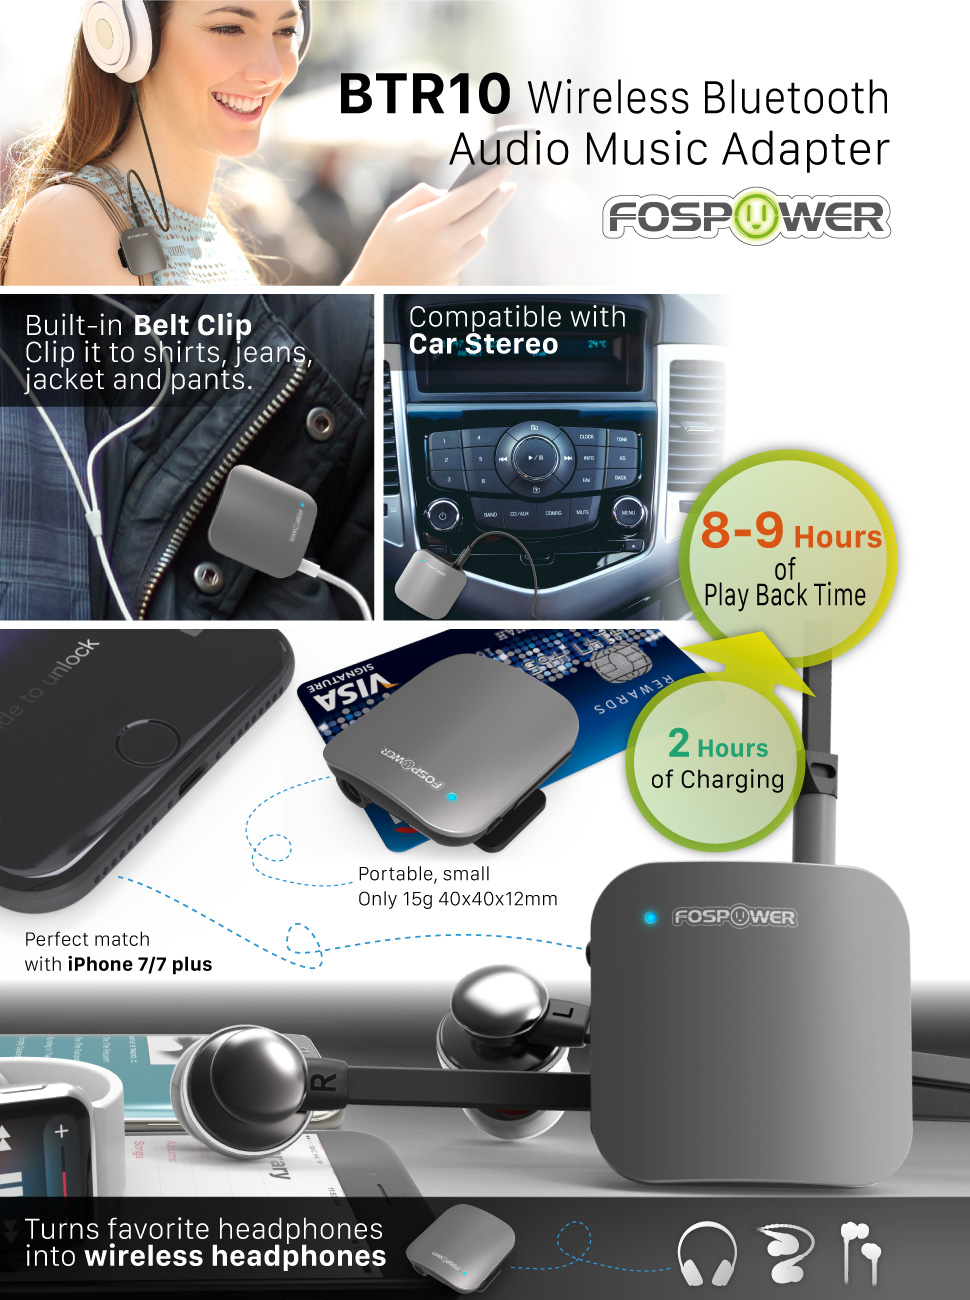 Amazon.com: Bluetooth Receiver, FosPower BTR10 Portable 4